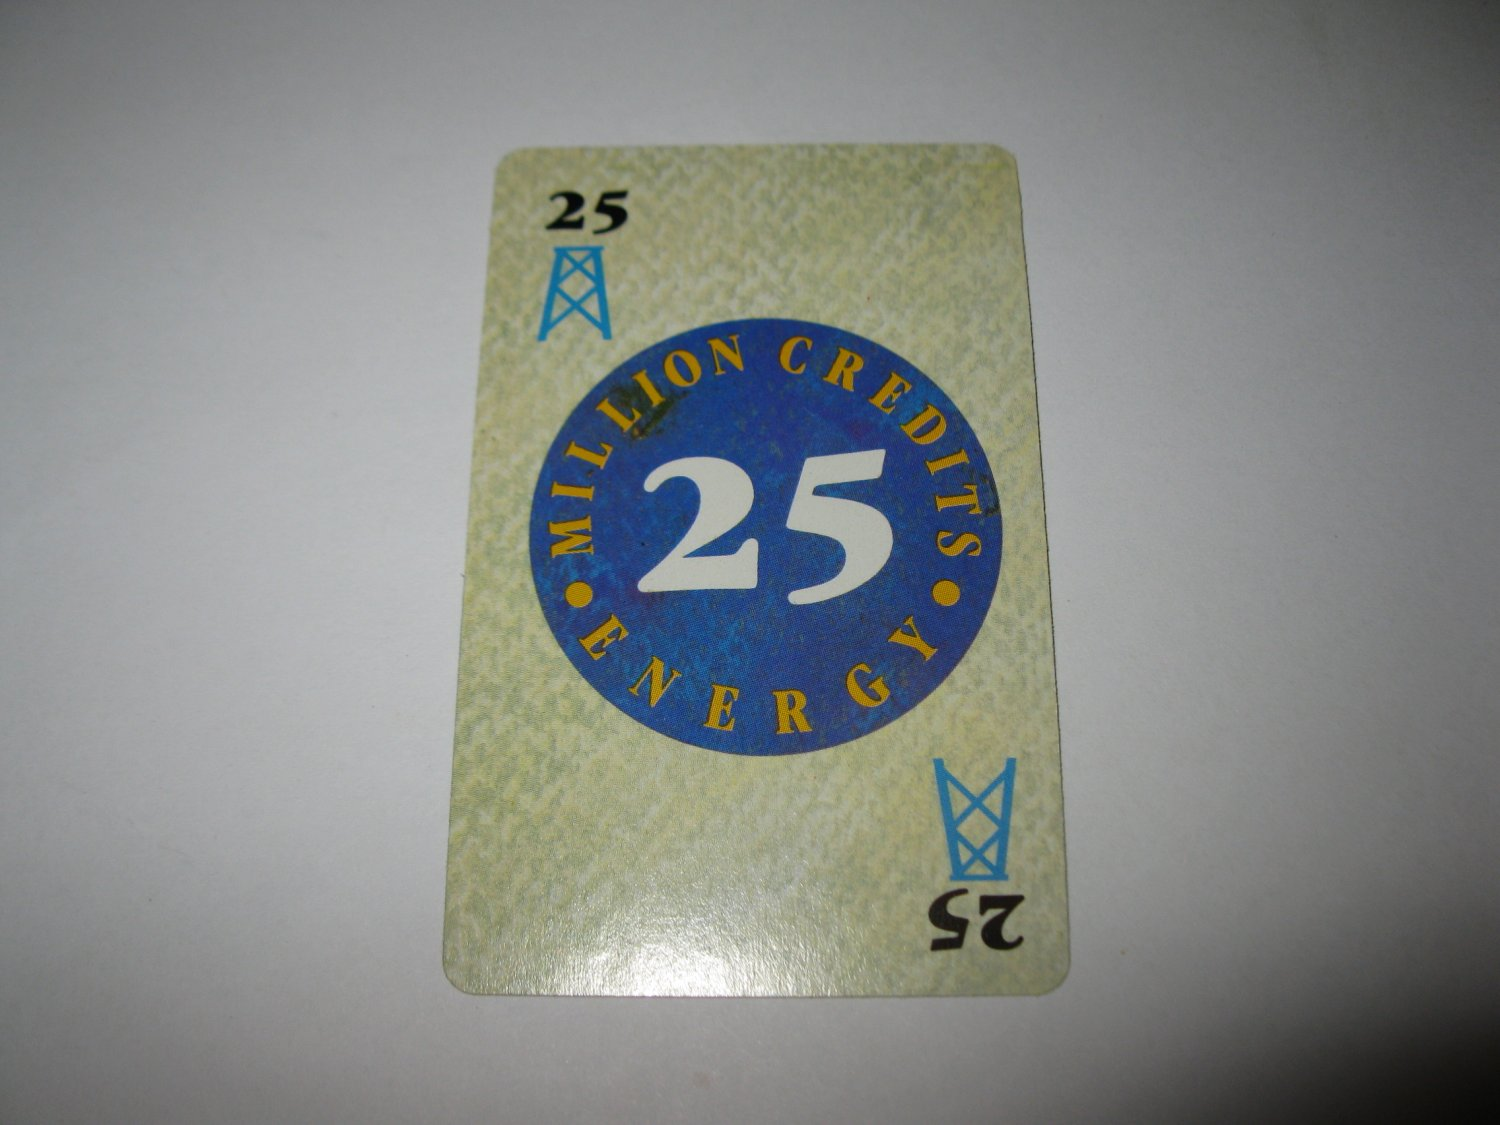 1986 Power Barons Board Game Piece: $25 Million Credits Energy card